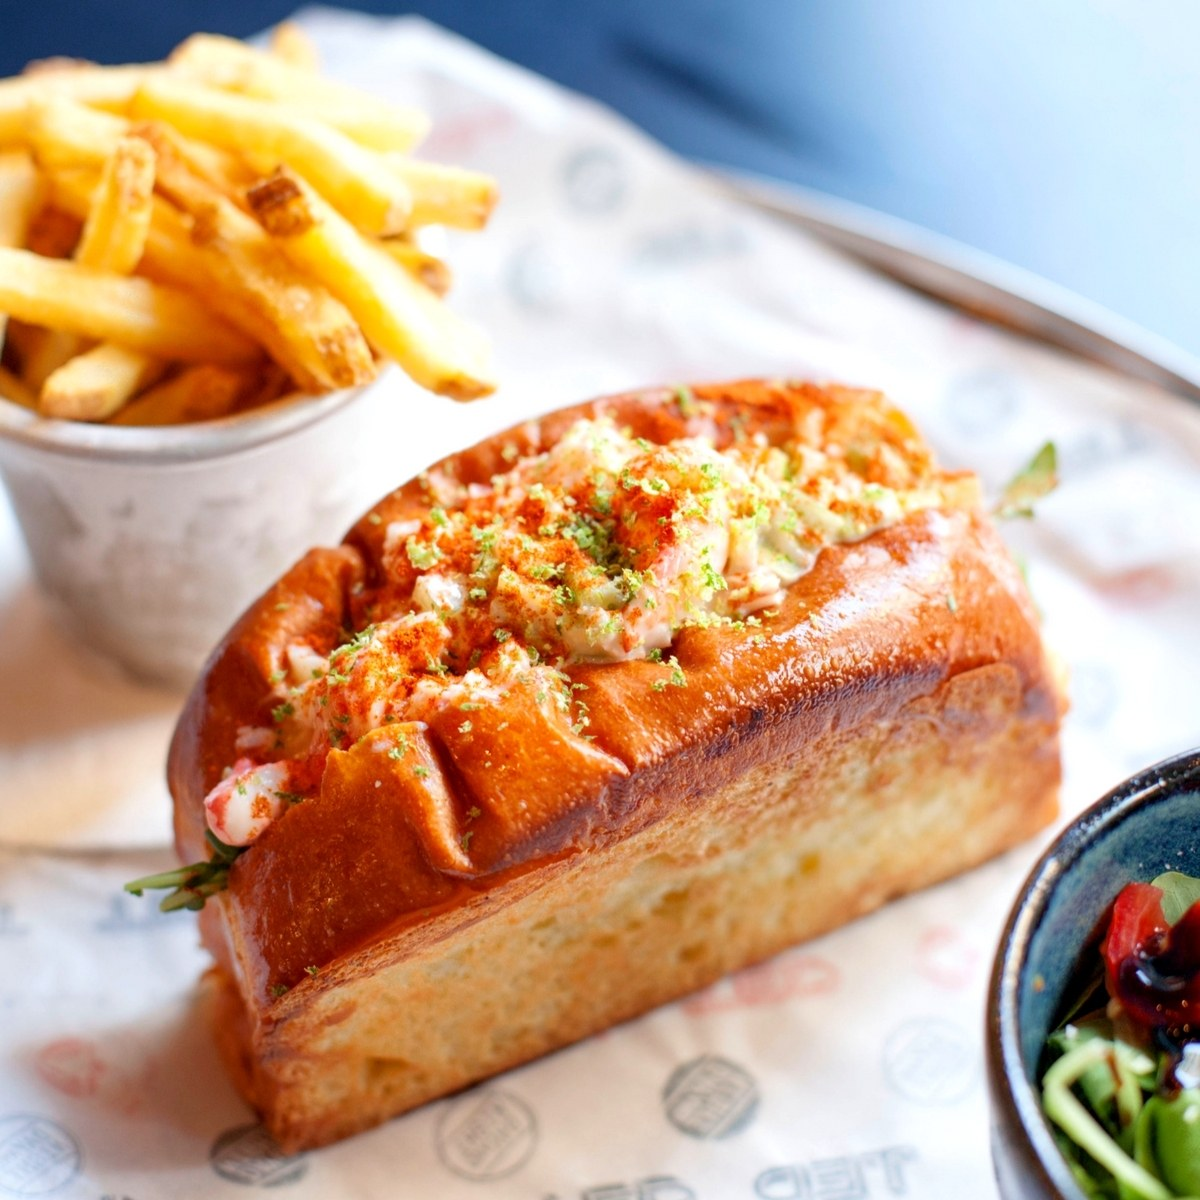 spycy-lobster-roll-ted-roma